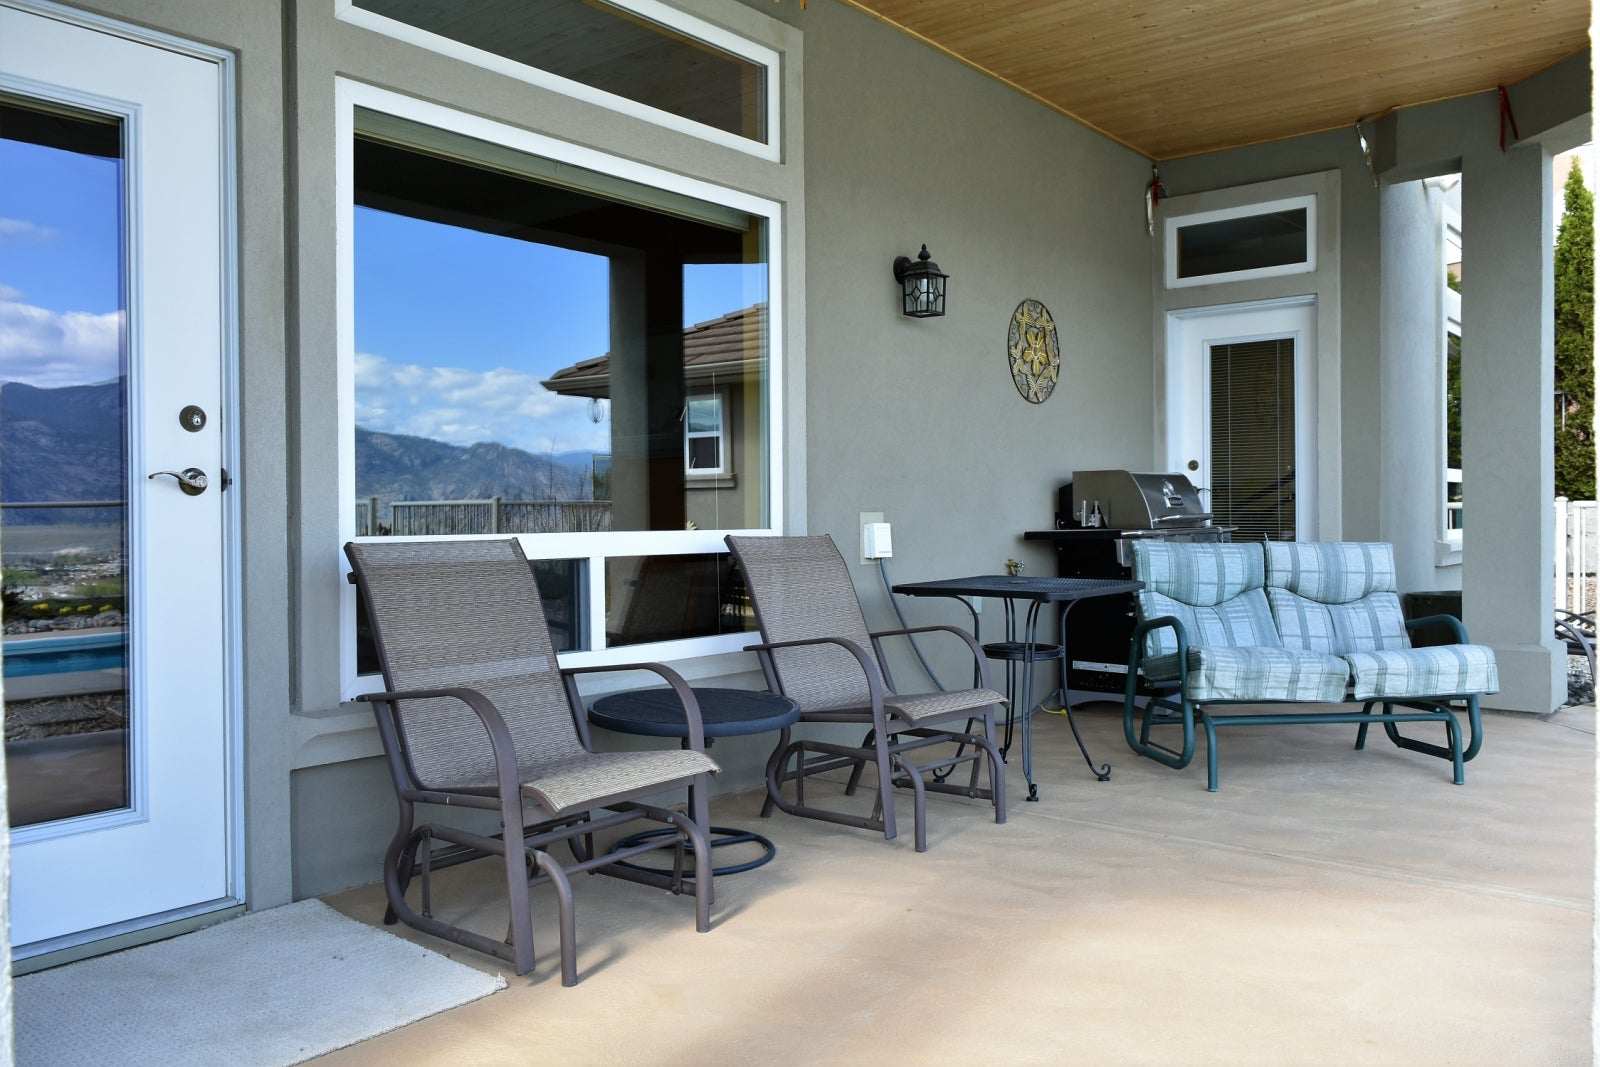 11715 Olympic View Drive - Osoyoos Single Family for sale, 4 Bedrooms (176846) #12